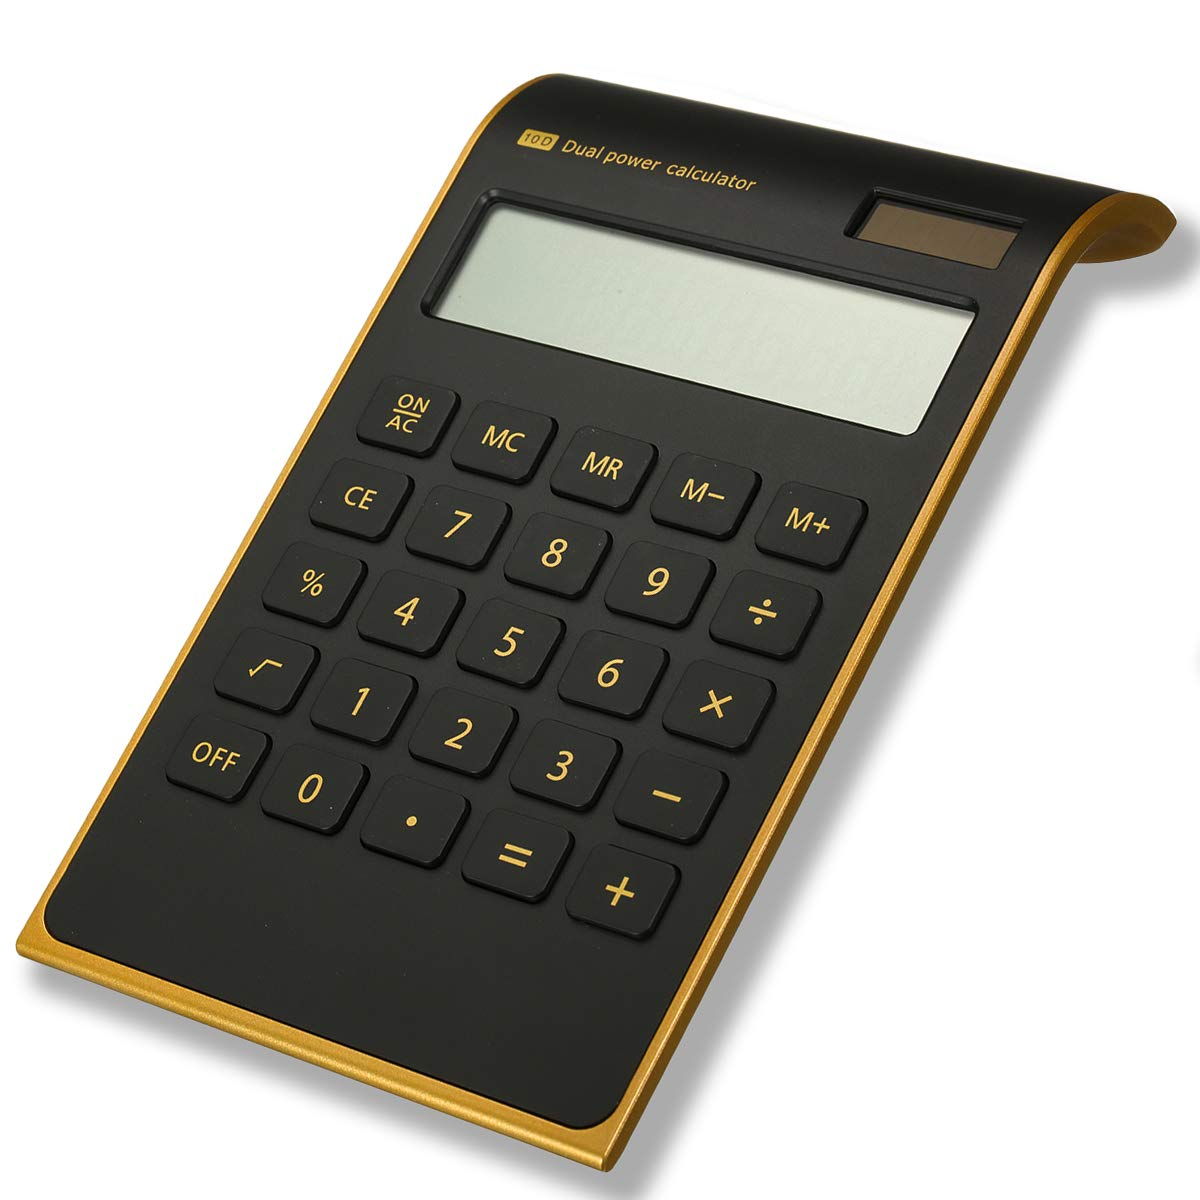 Caveen Calculator Ultra Thin Solar Power Calculator for Home Office Desktop Calculator Tilted LCD Display Business Calculator (Basic, Black)